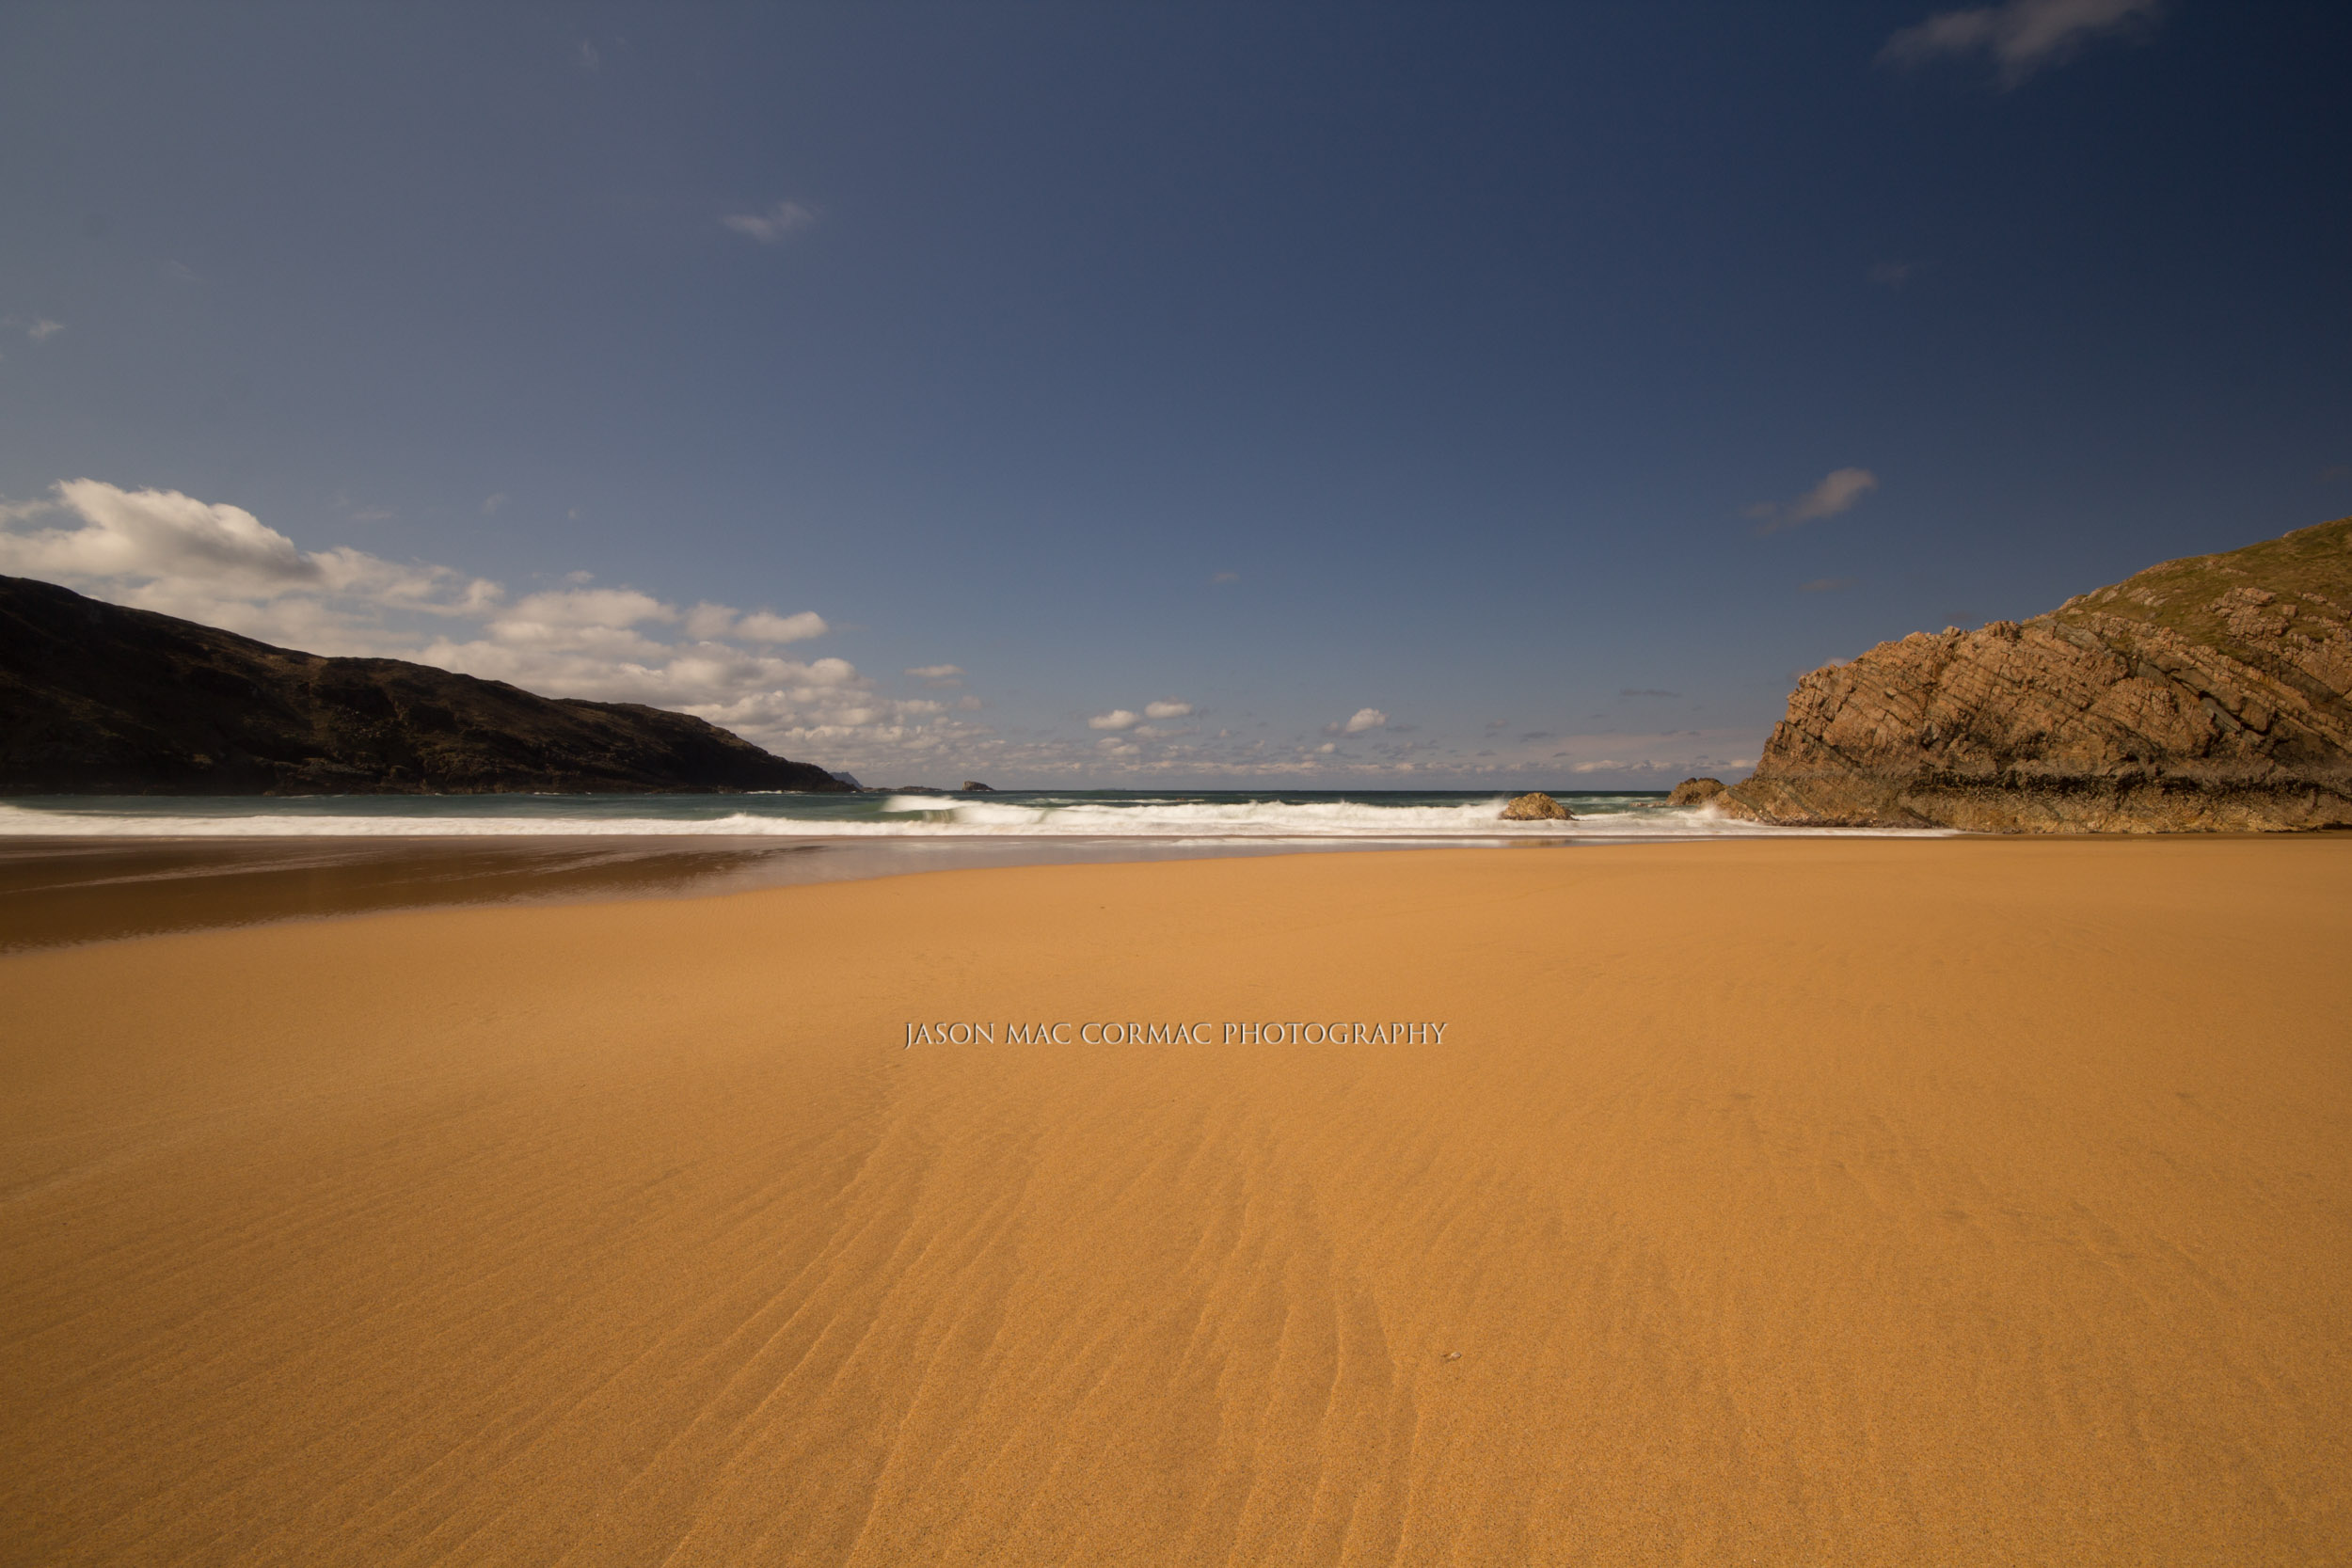 A surreal beach in Donegal